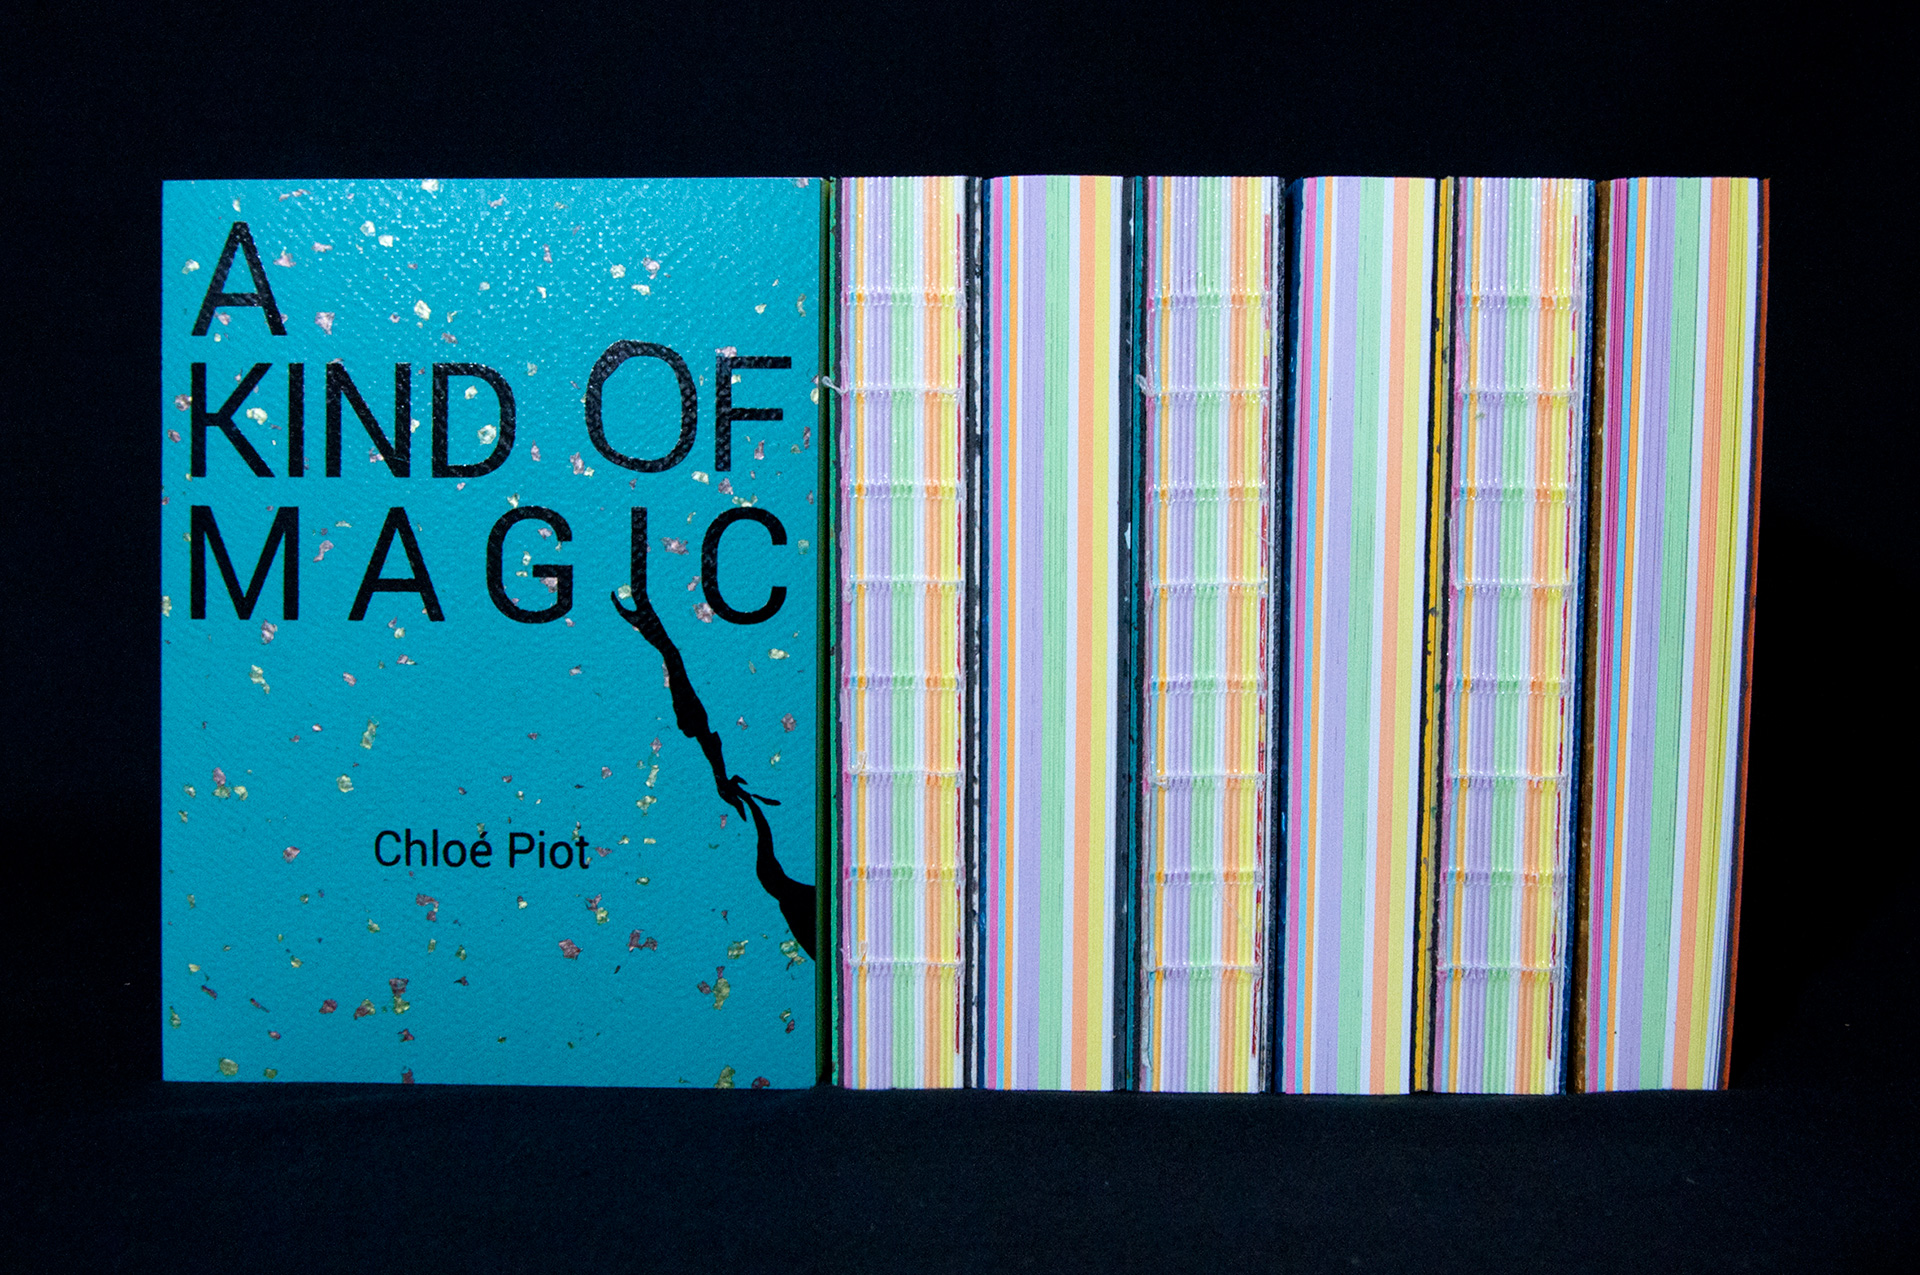 A Kind of Magic - Chloé Piot